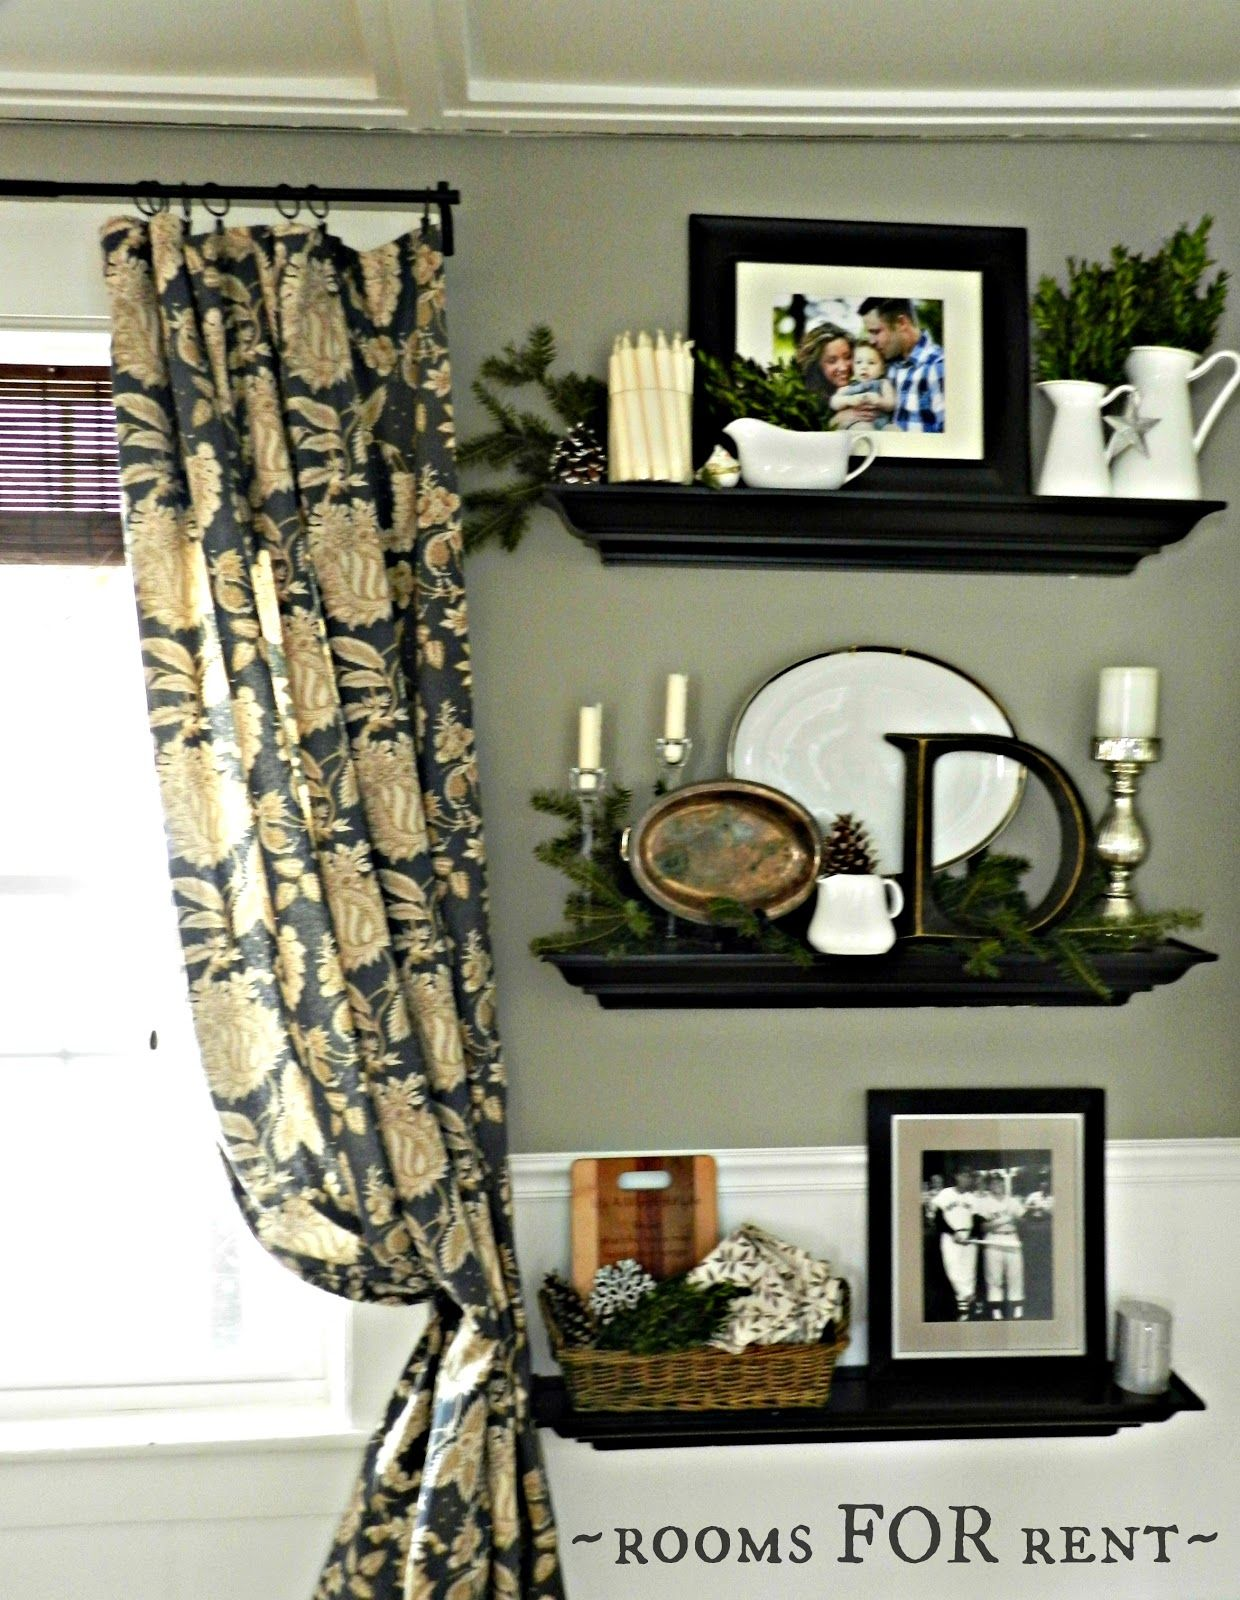 Floating Shelves Might Be A Good Idea For The Dead Space In The Li January Decorating